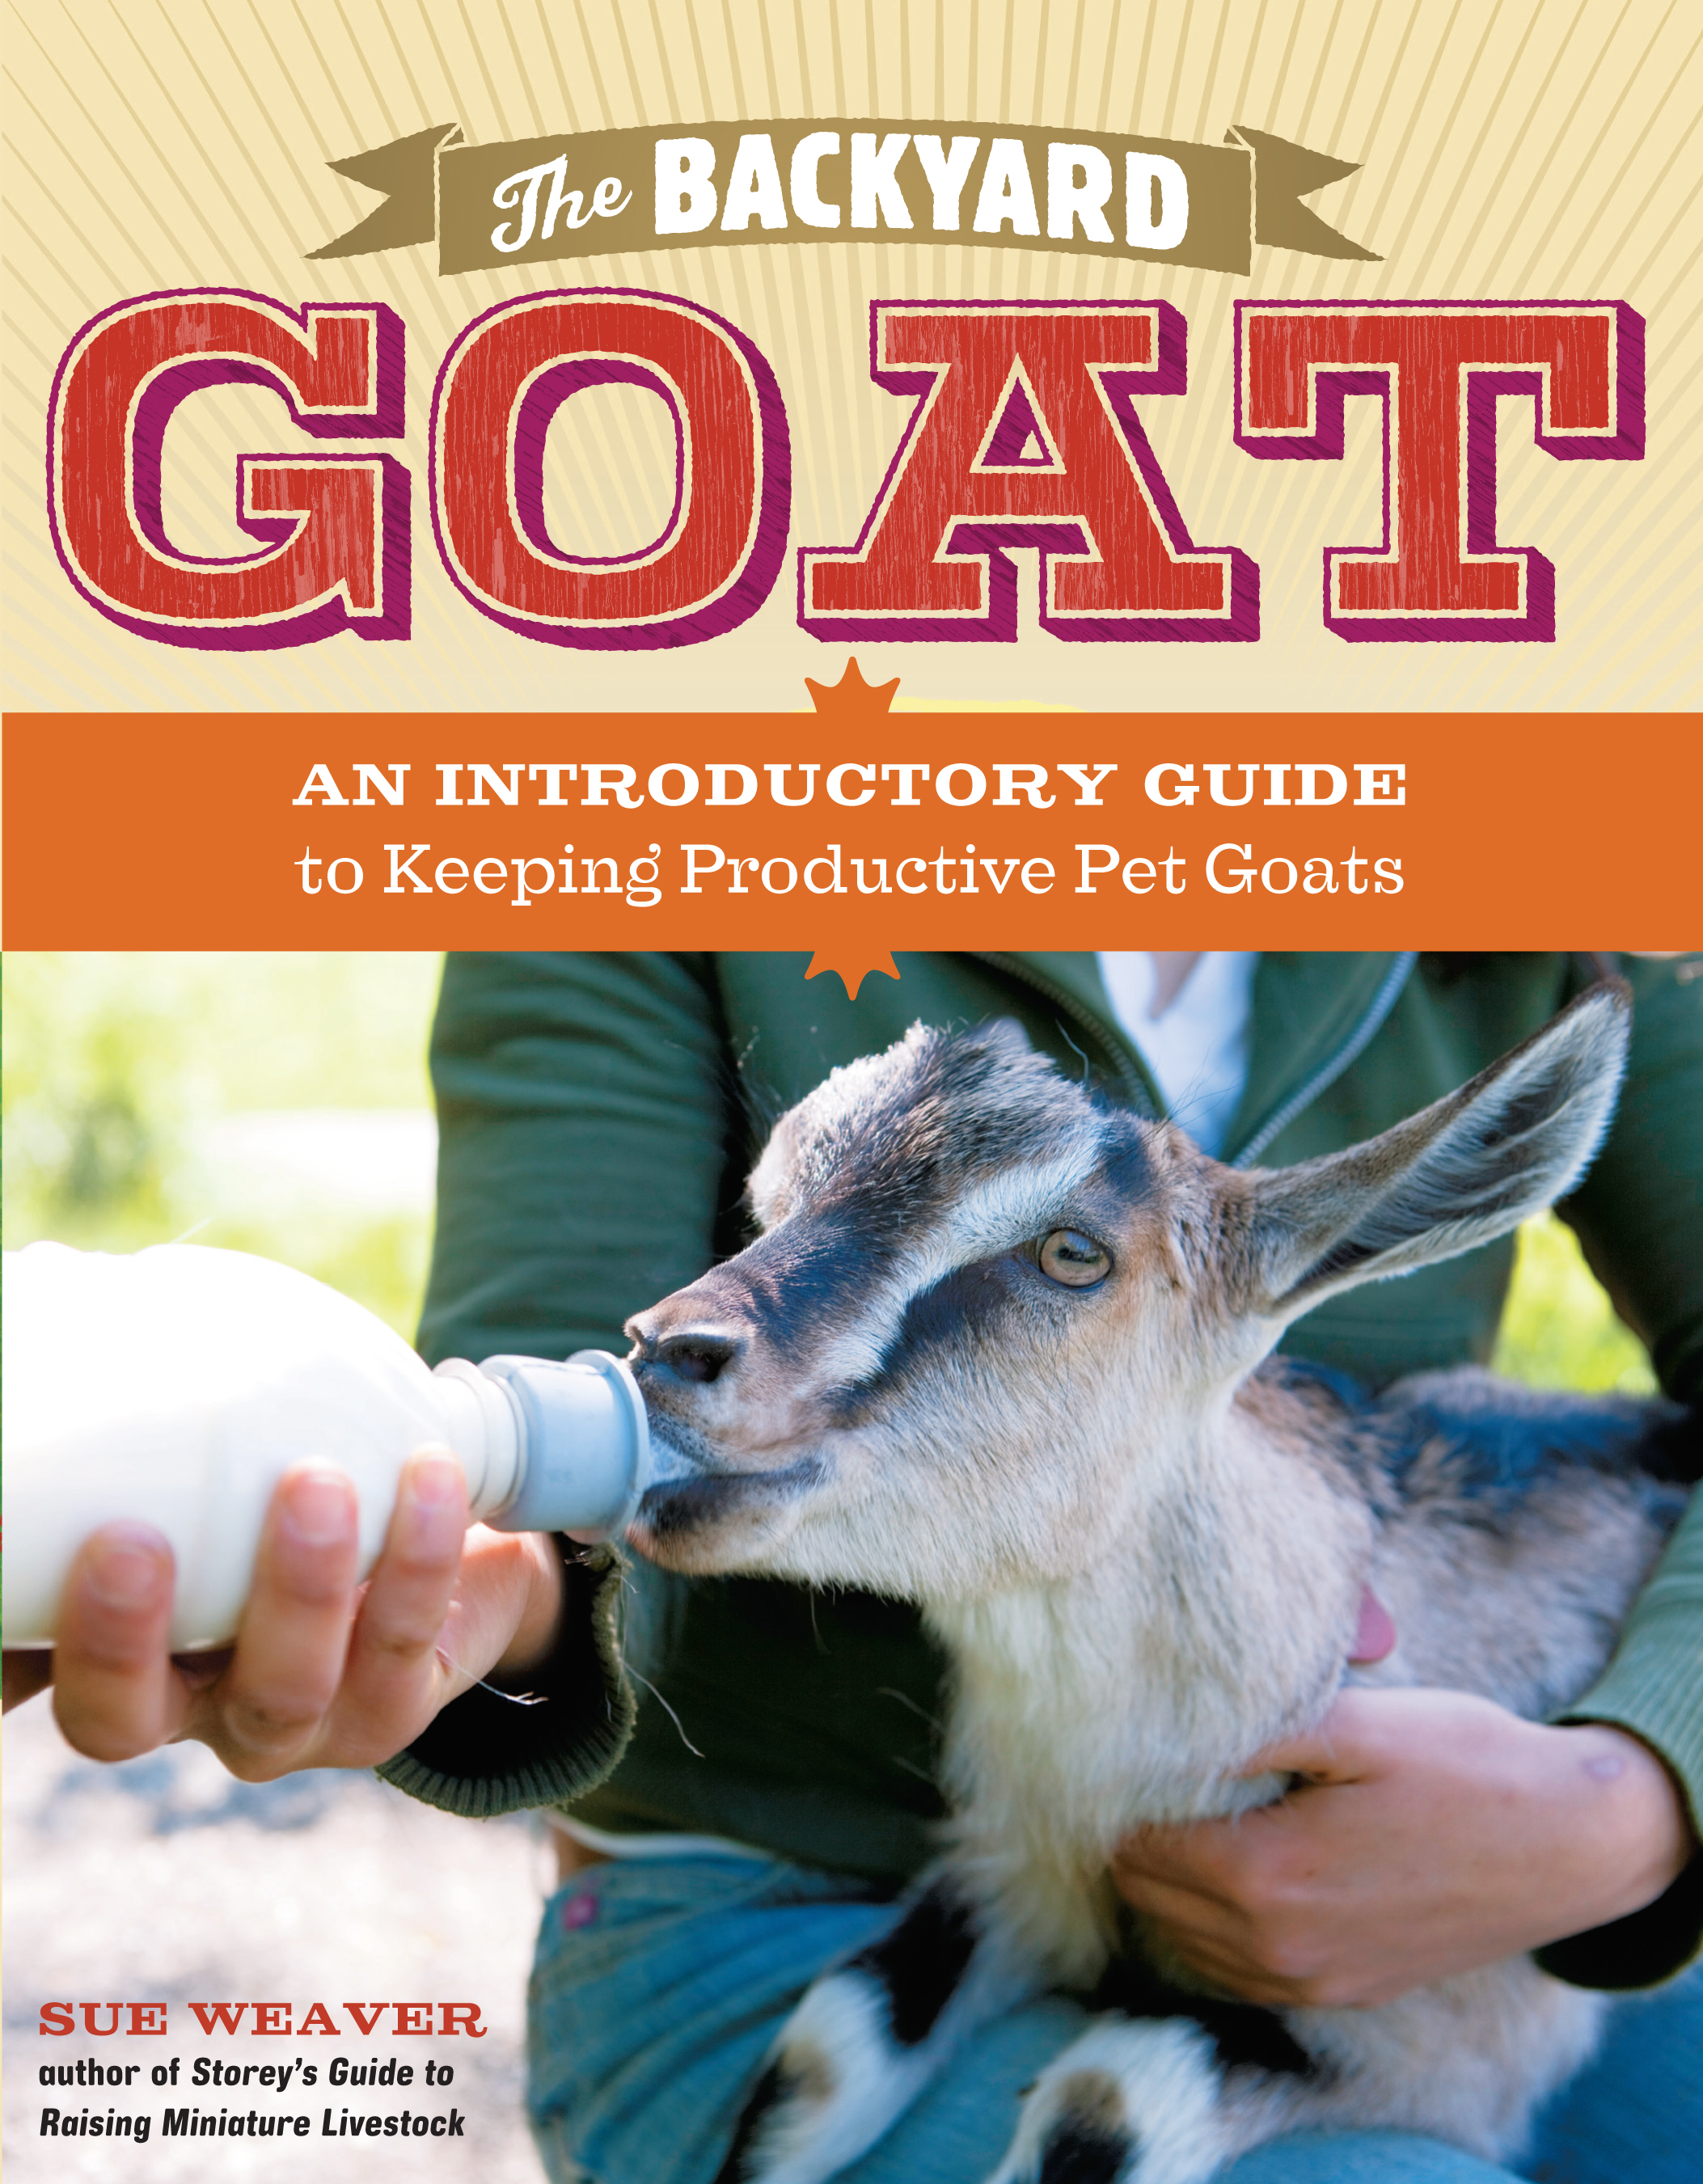 The Backyard Goat An Introductory Guide to Keeping and Enjoying Pet Goats, from Feeding and Housing to Making Your Own Cheese - Sue Weaver